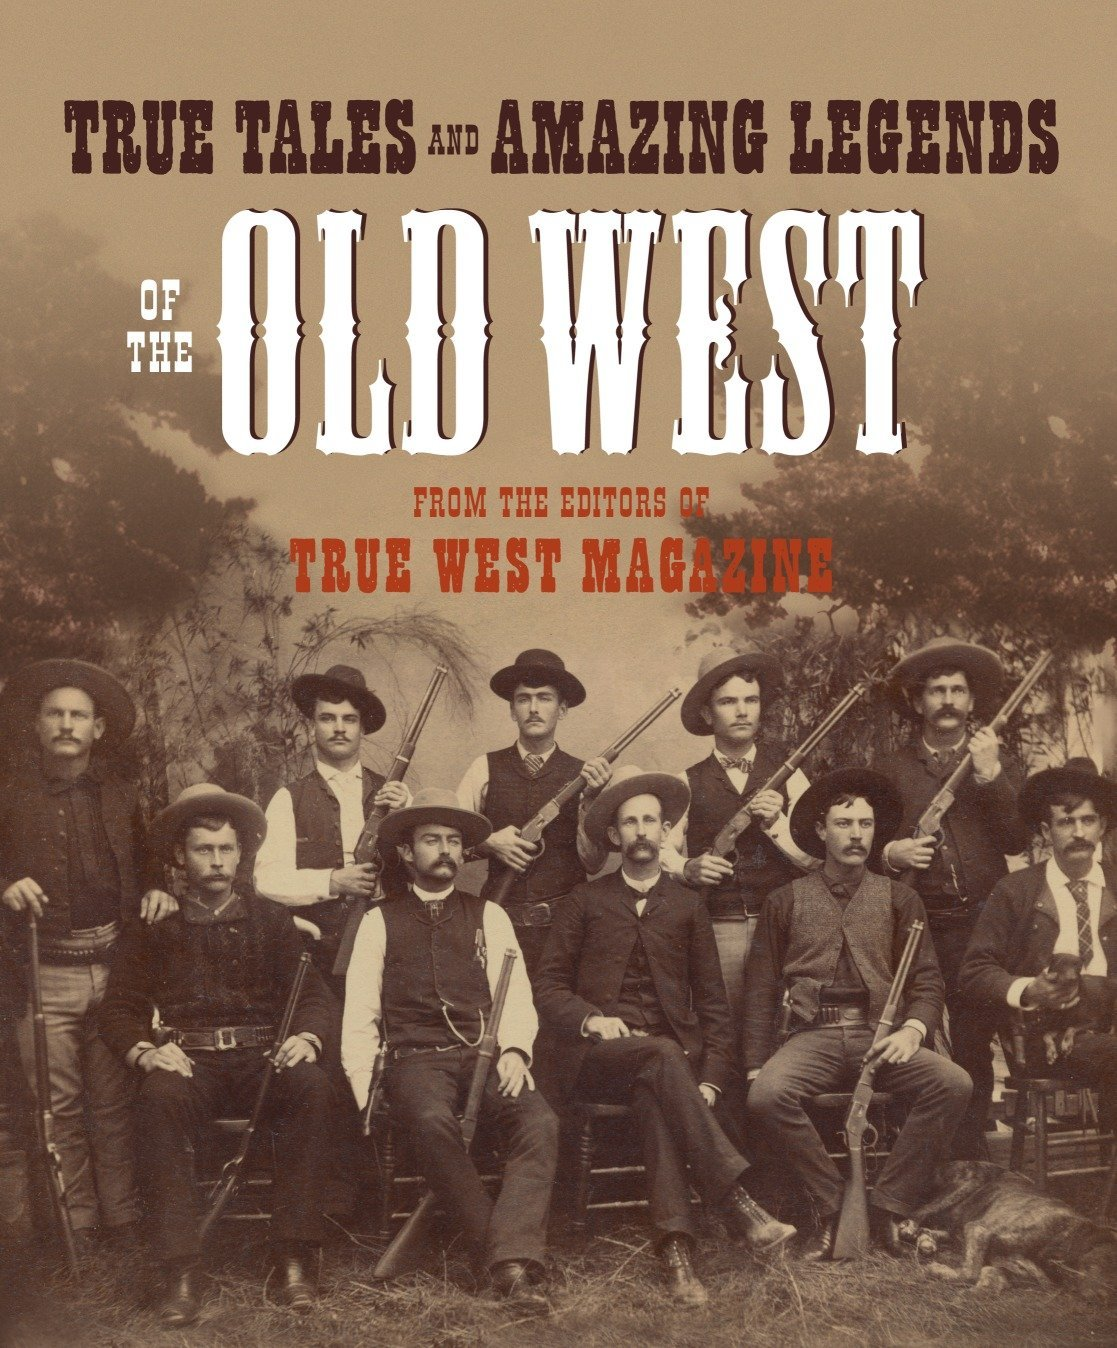 True Tales and Amazing Legends of the Old West: From True West Magazine:  Editors of True West: 9780307236388: Amazon.com: Books